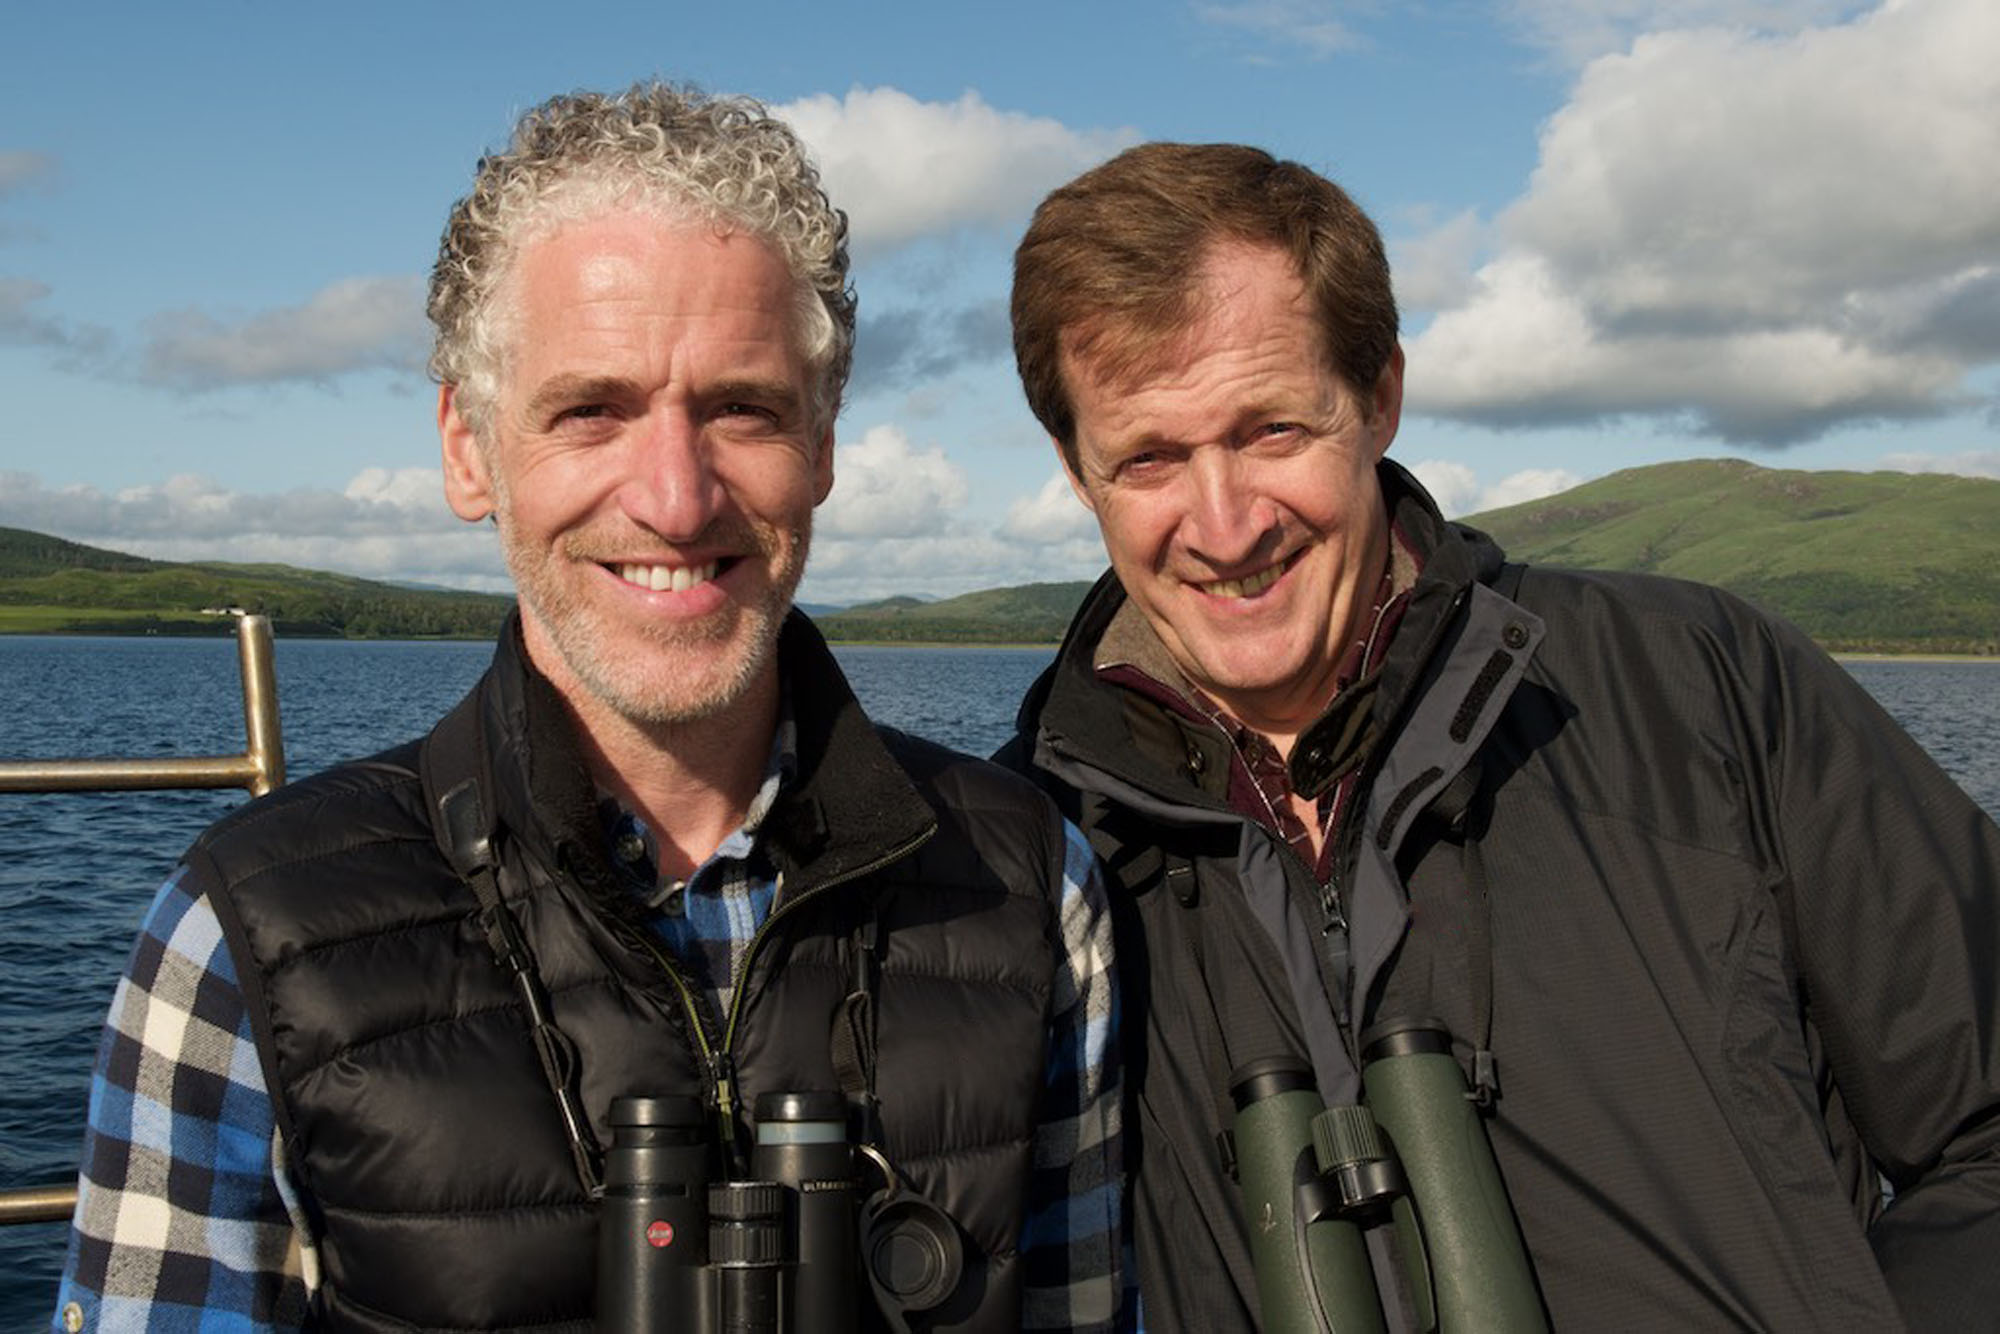 """Alastair Campbell: """"Losing yourself in nature can help deal with anxiety and depression"""""""